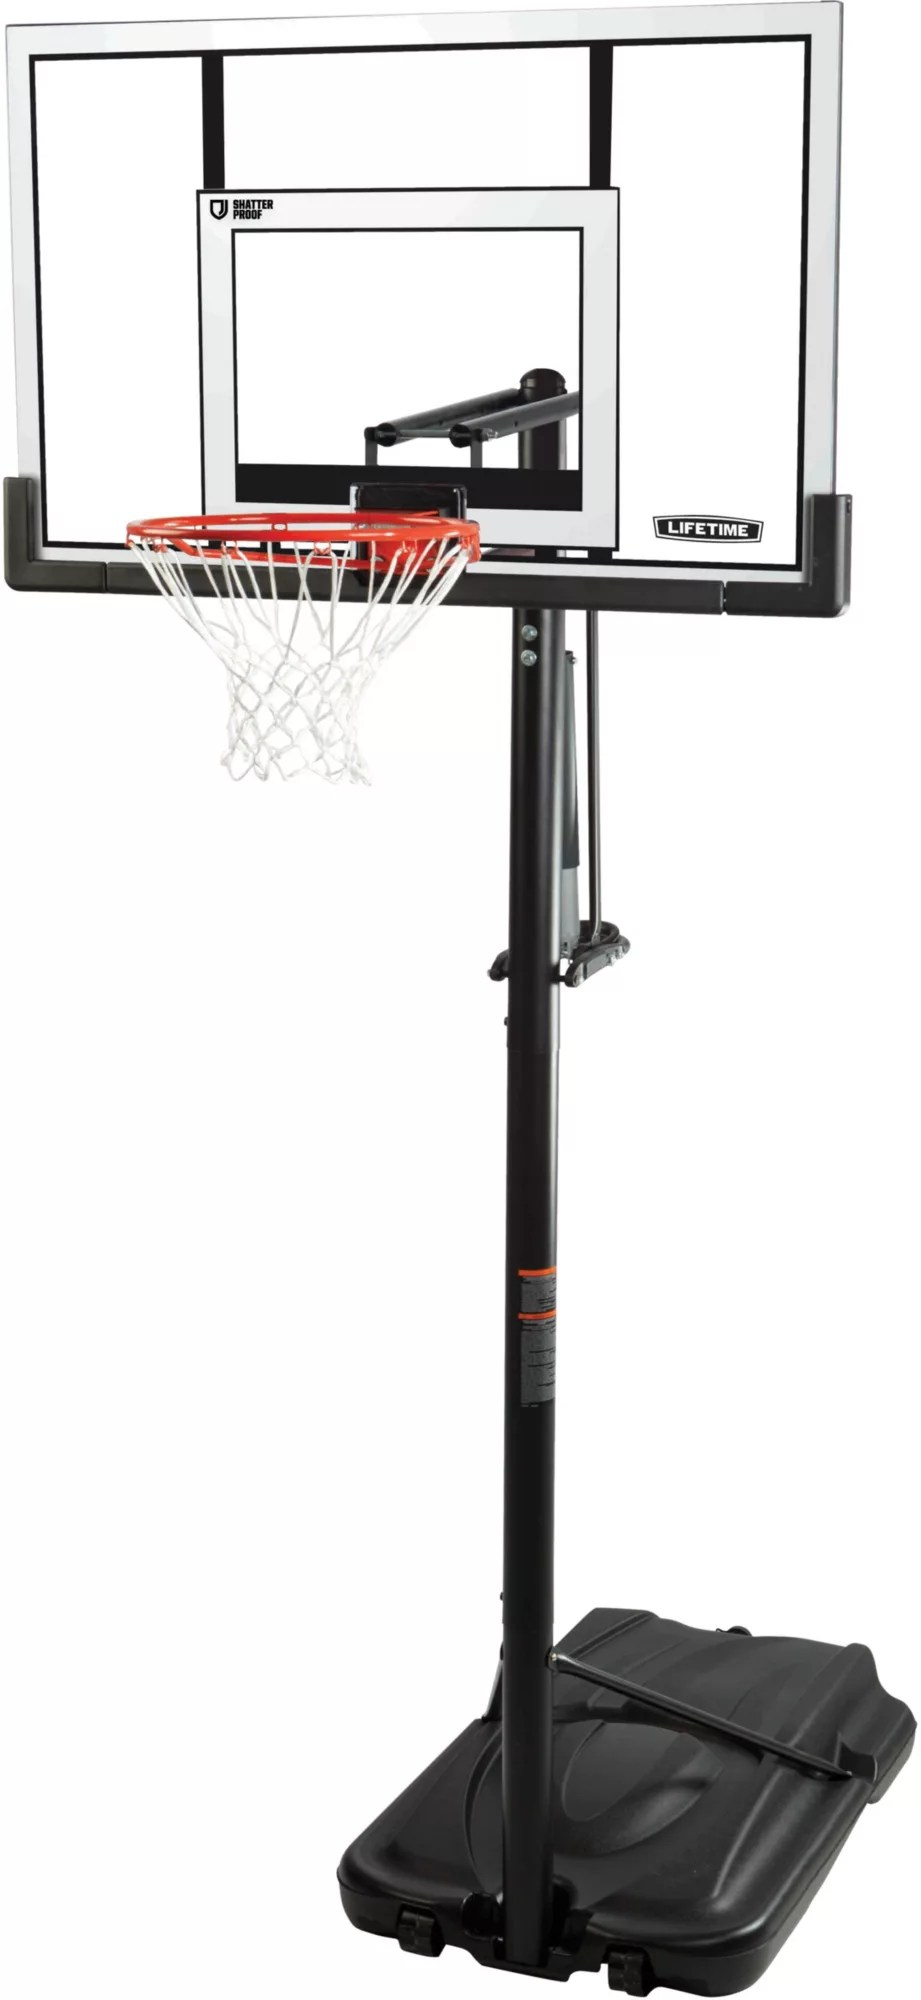 Matching Replacement Lifetime Basketball Backboard to